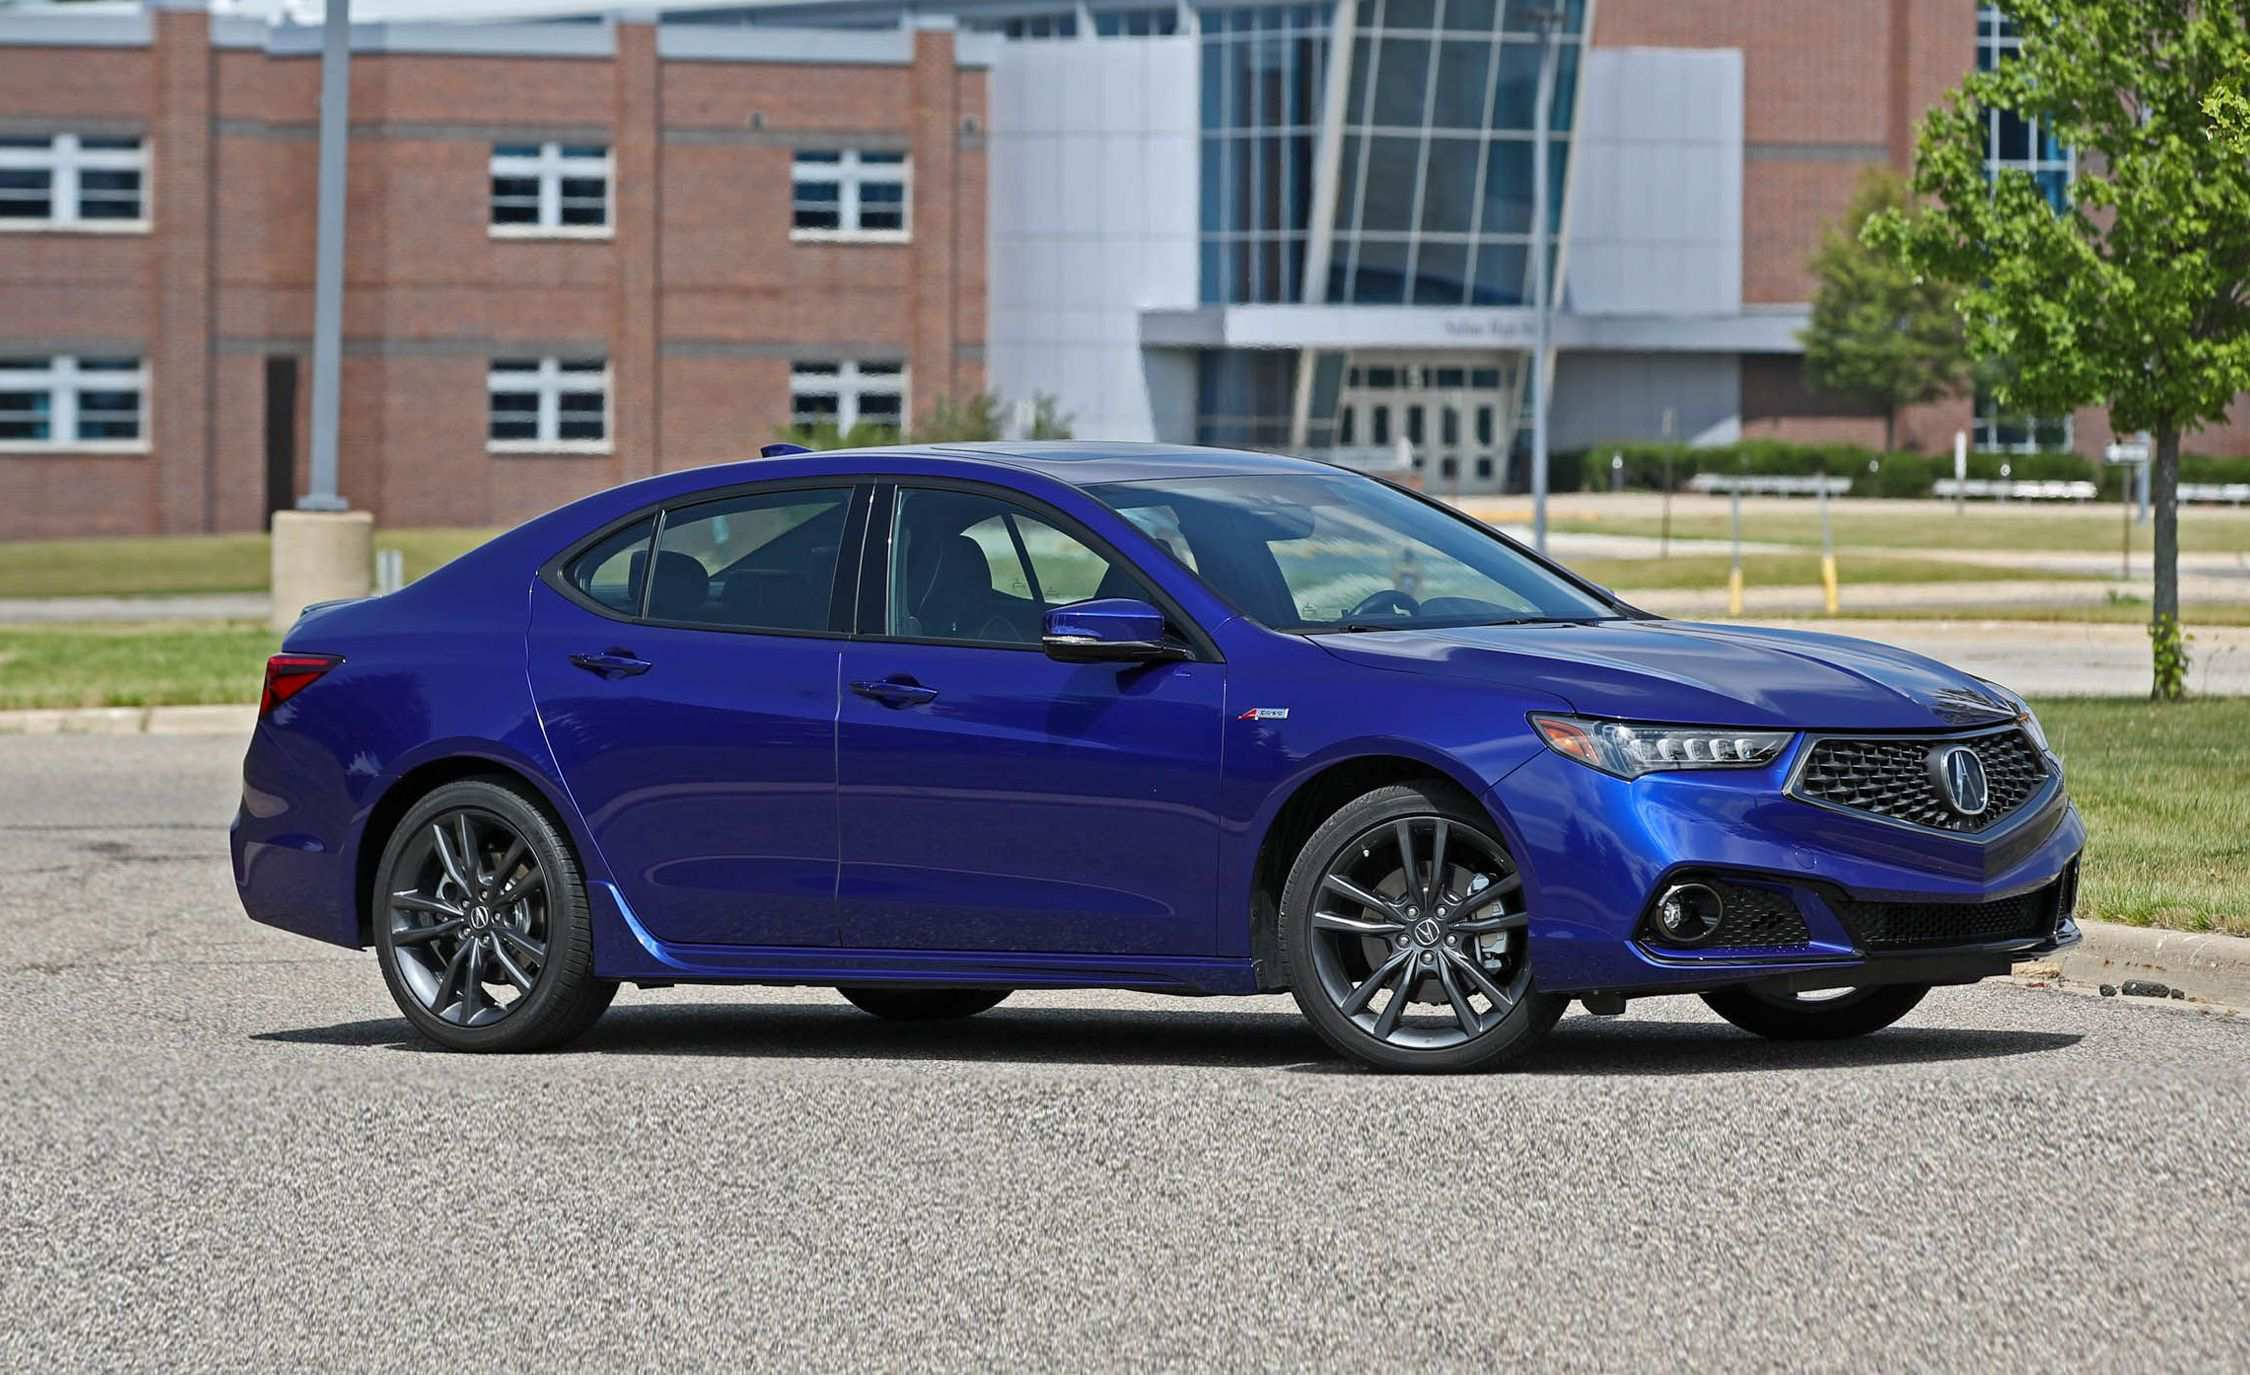 71 All New Acura Tlx 2020 Price Concept And Review